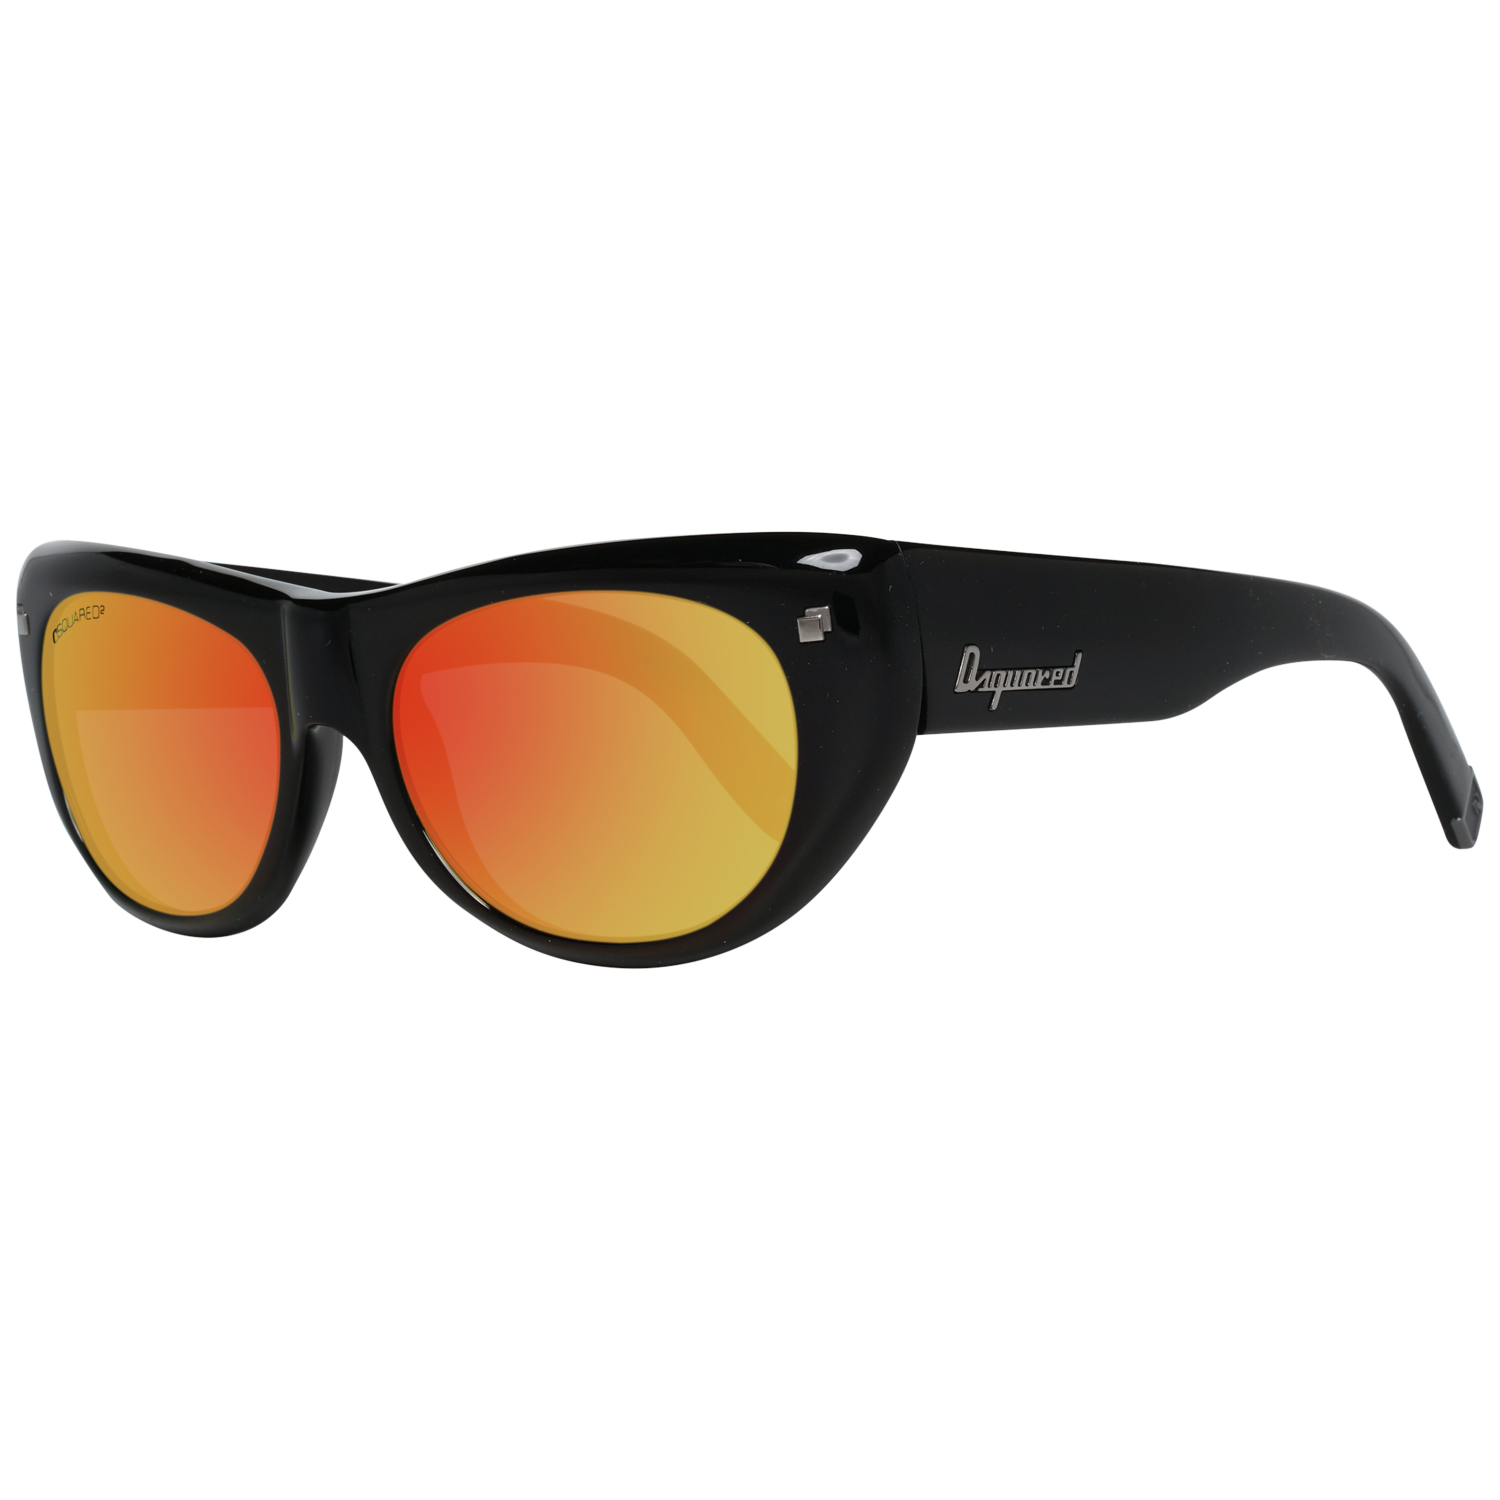 Dsquared2 Sunglasses DQ0107 01G 55 Black